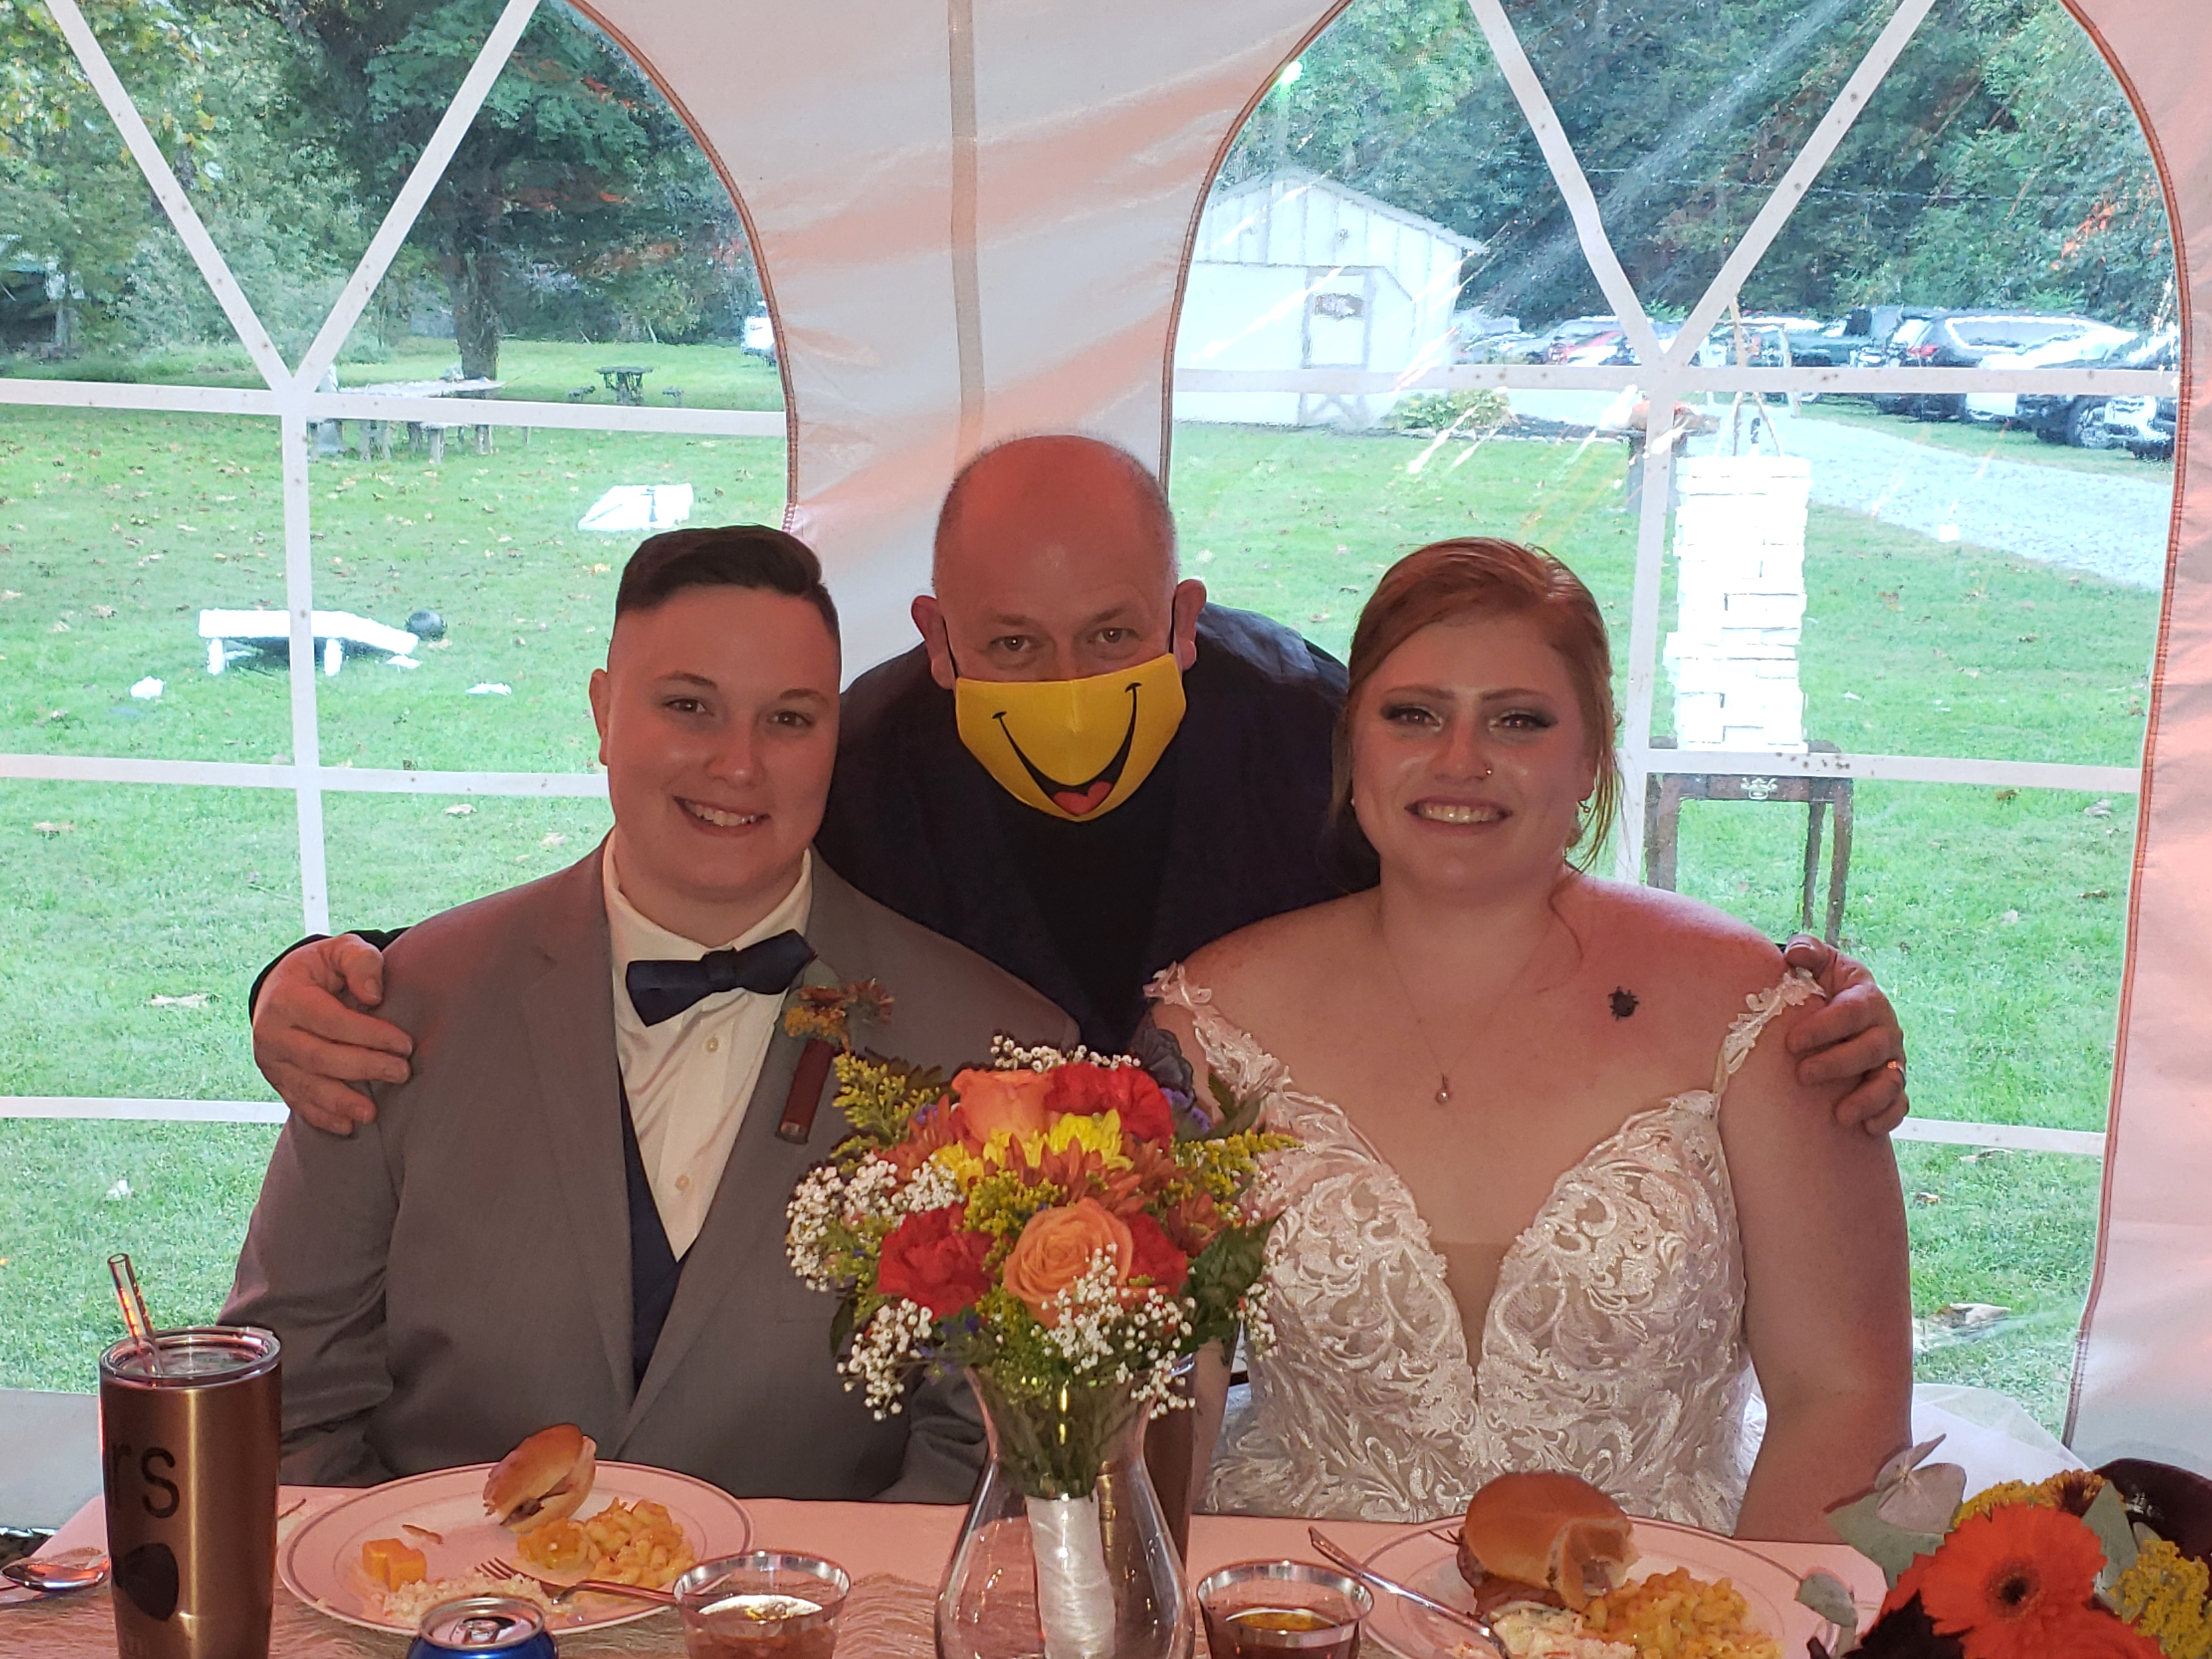 All Party Starz Entertainment, Wedding DJ in PA, Recognized with WeddingWire Couples Choice 2021 Award